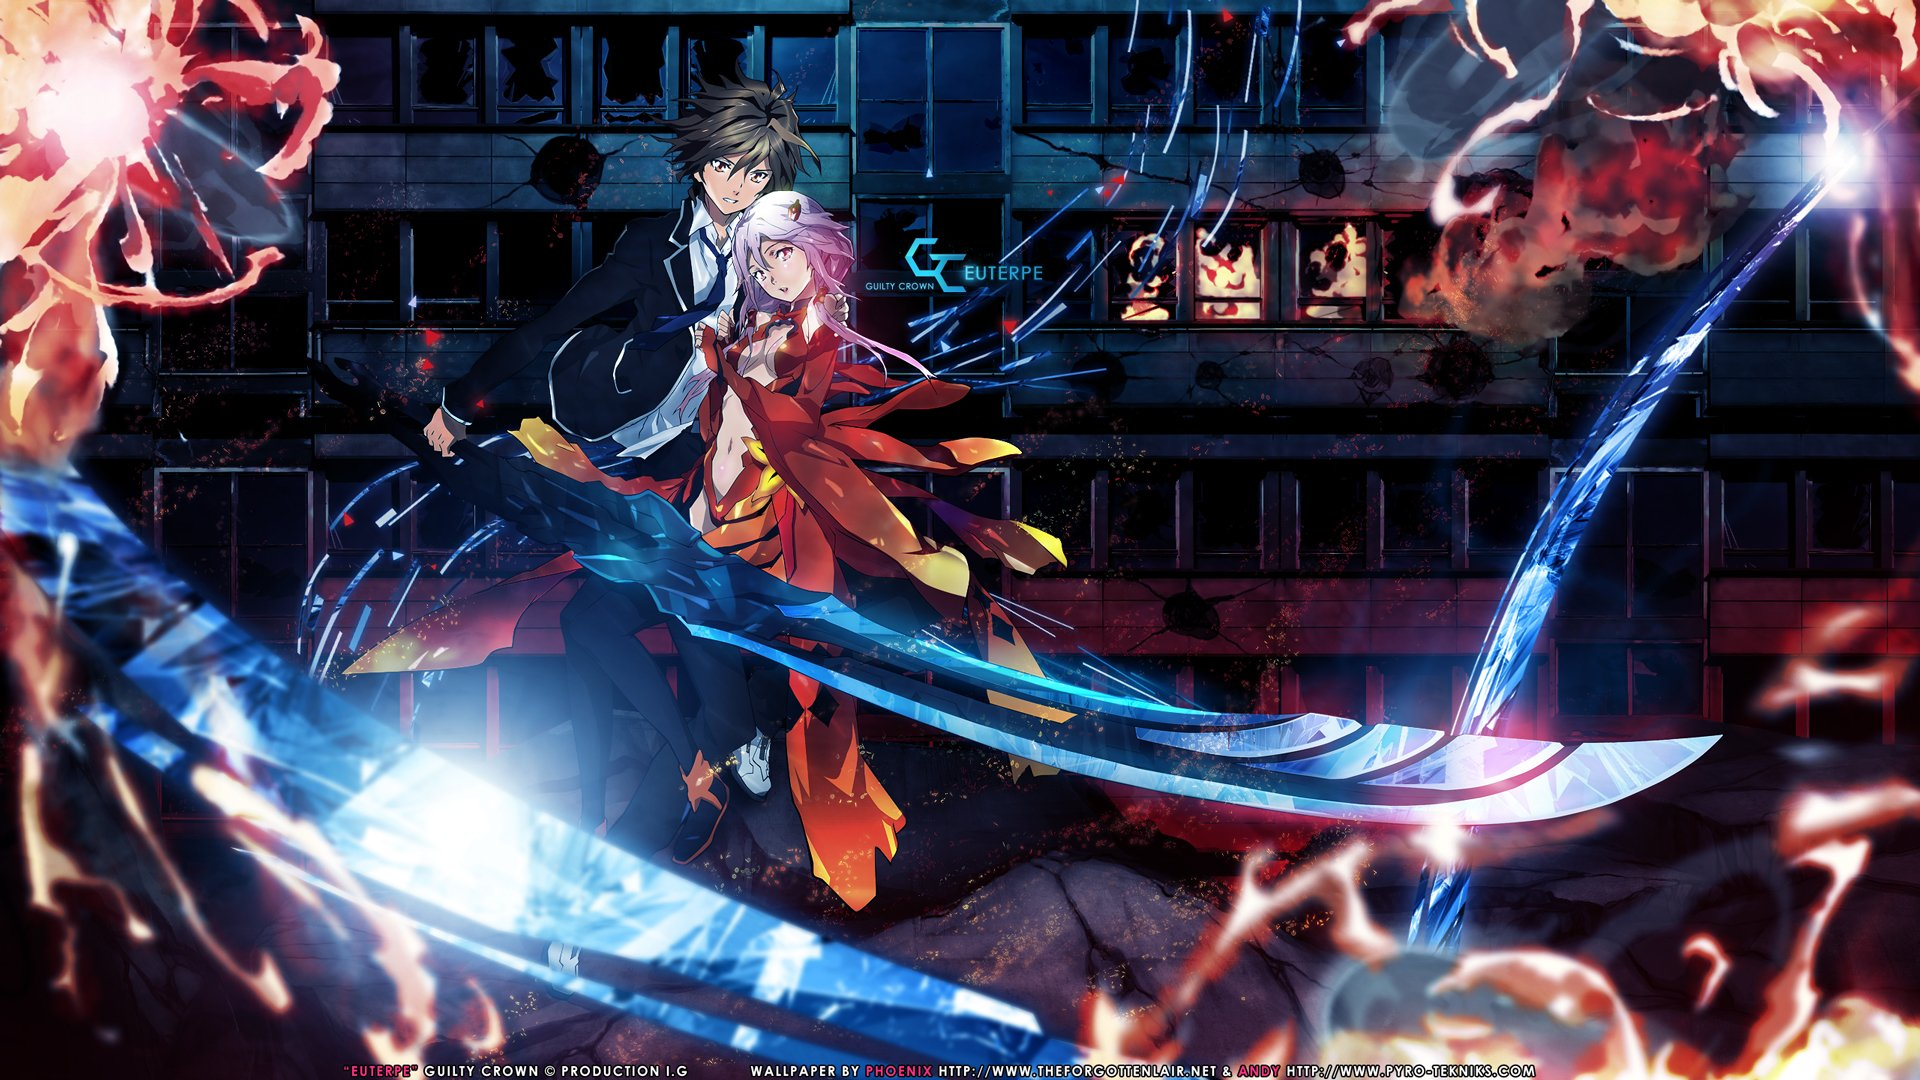 hd wallpaper background id193980 1920x1080 anime guilty crown